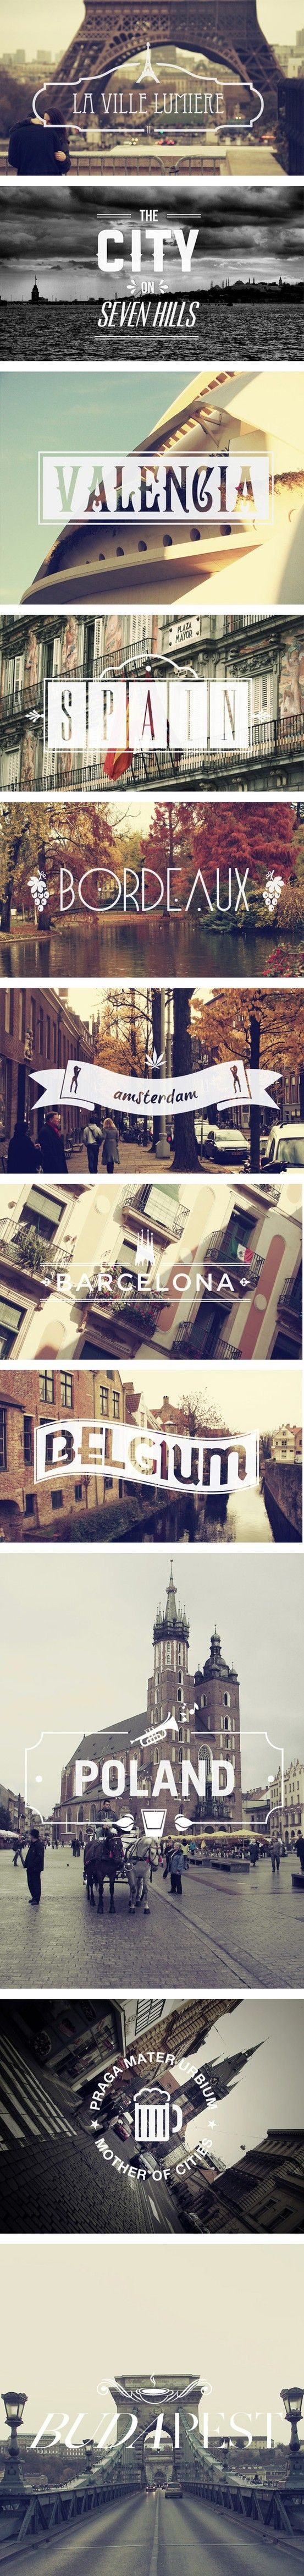 City lights and streets of gold(;     i love how there's a mexican flag in barcelona when it's obviously in spain